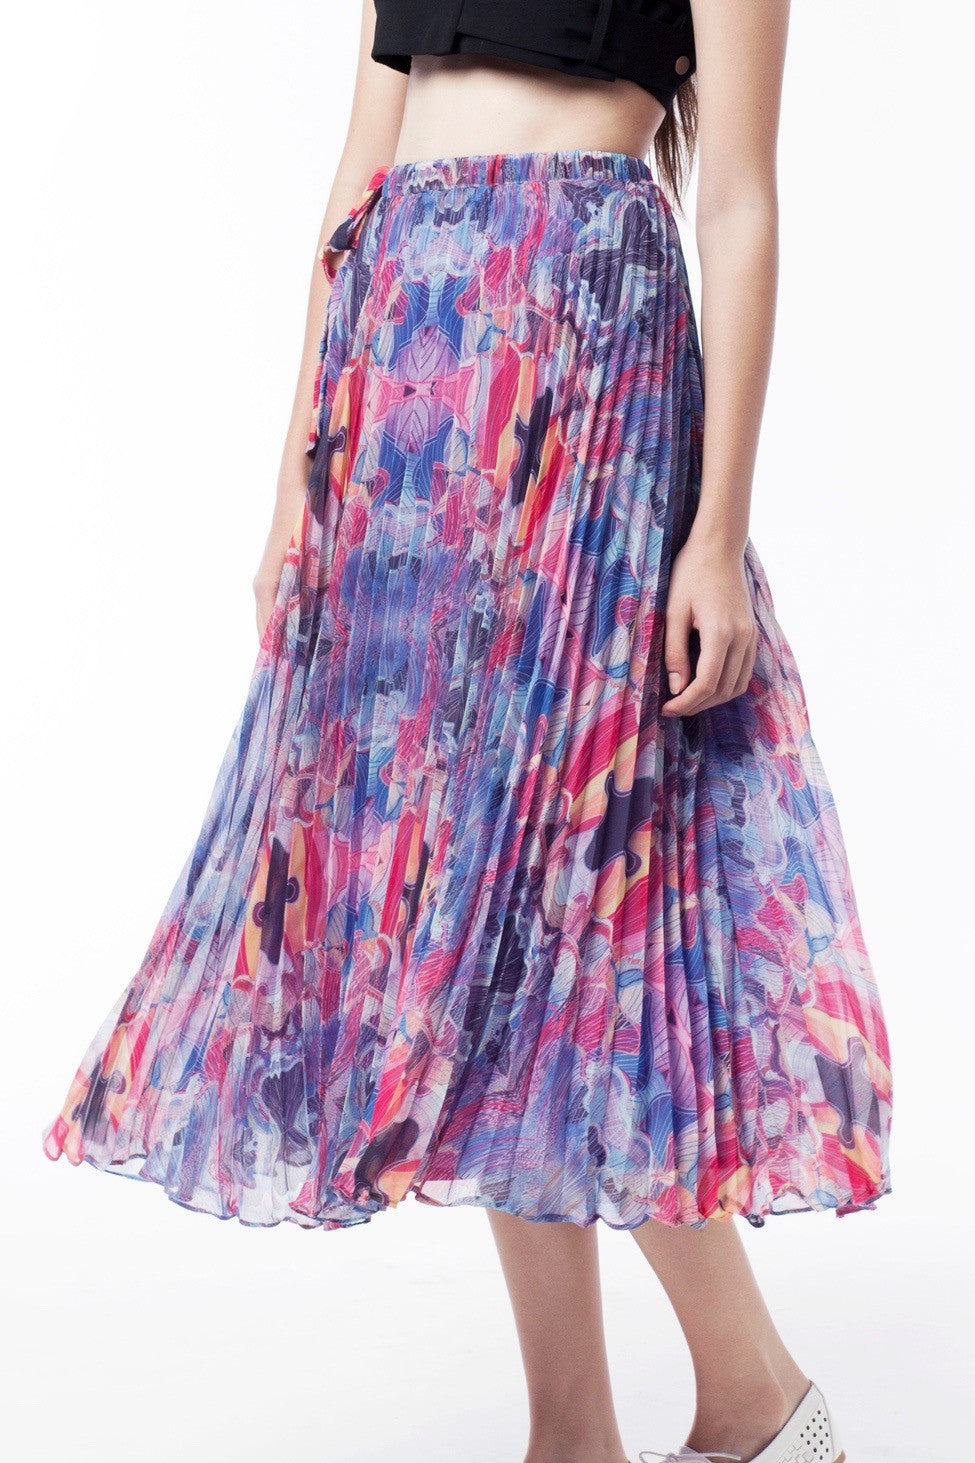 Kaleidoscopic Print Pleat Skirt - GlanceZ   - 4